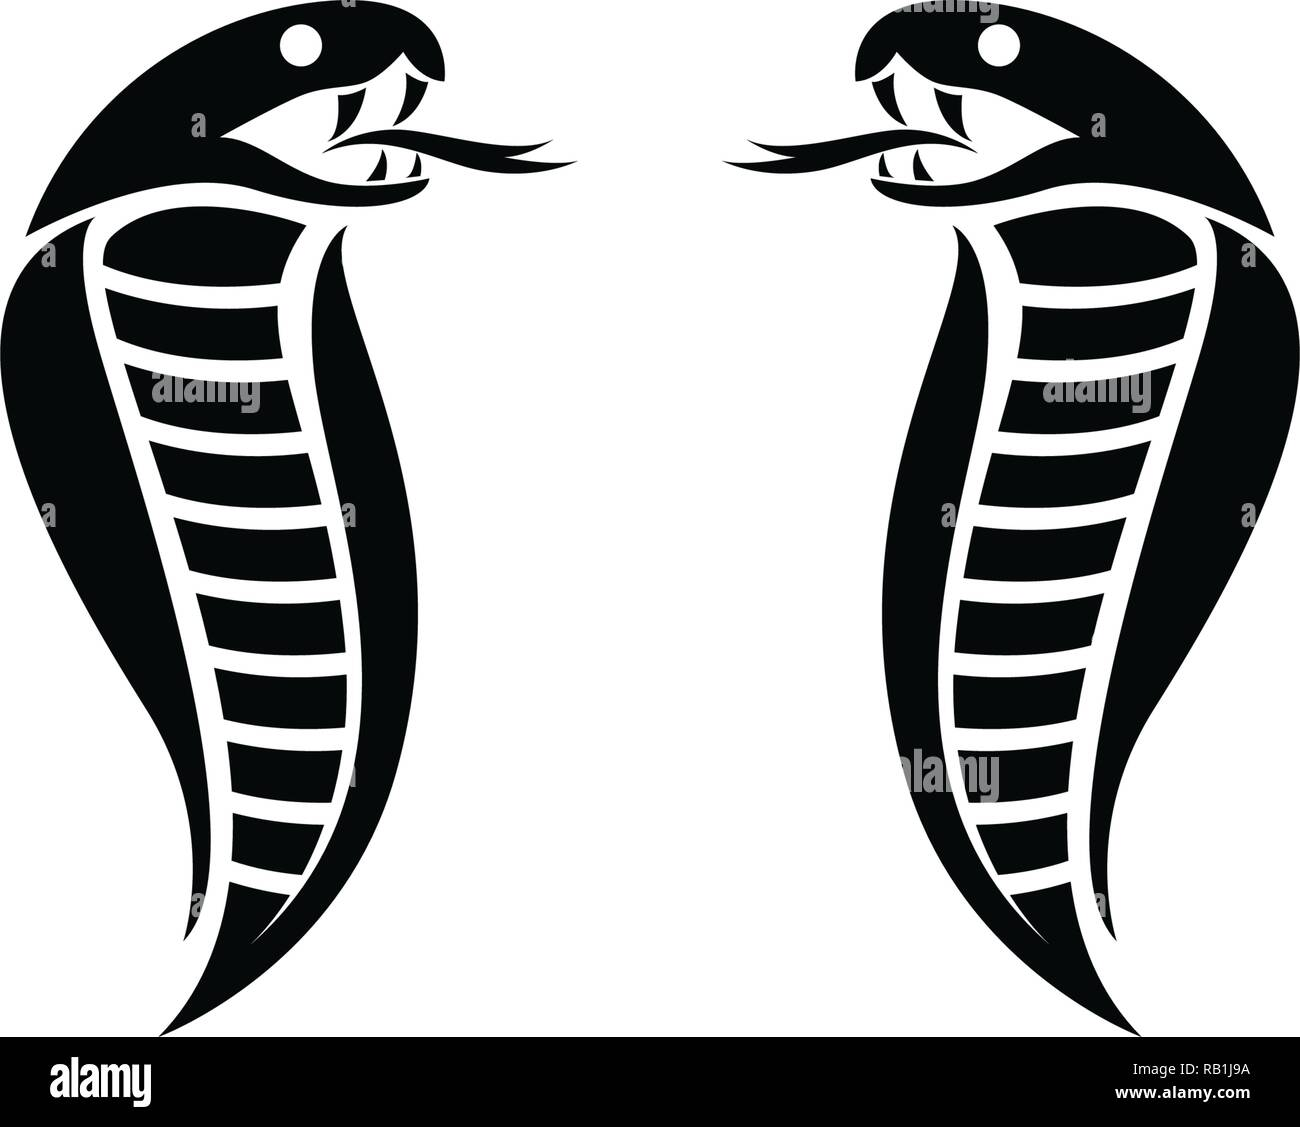 cobra logo high resolution stock photography and images alamy https www alamy com cobra logo template design in a triangle vector illustration image230532326 html